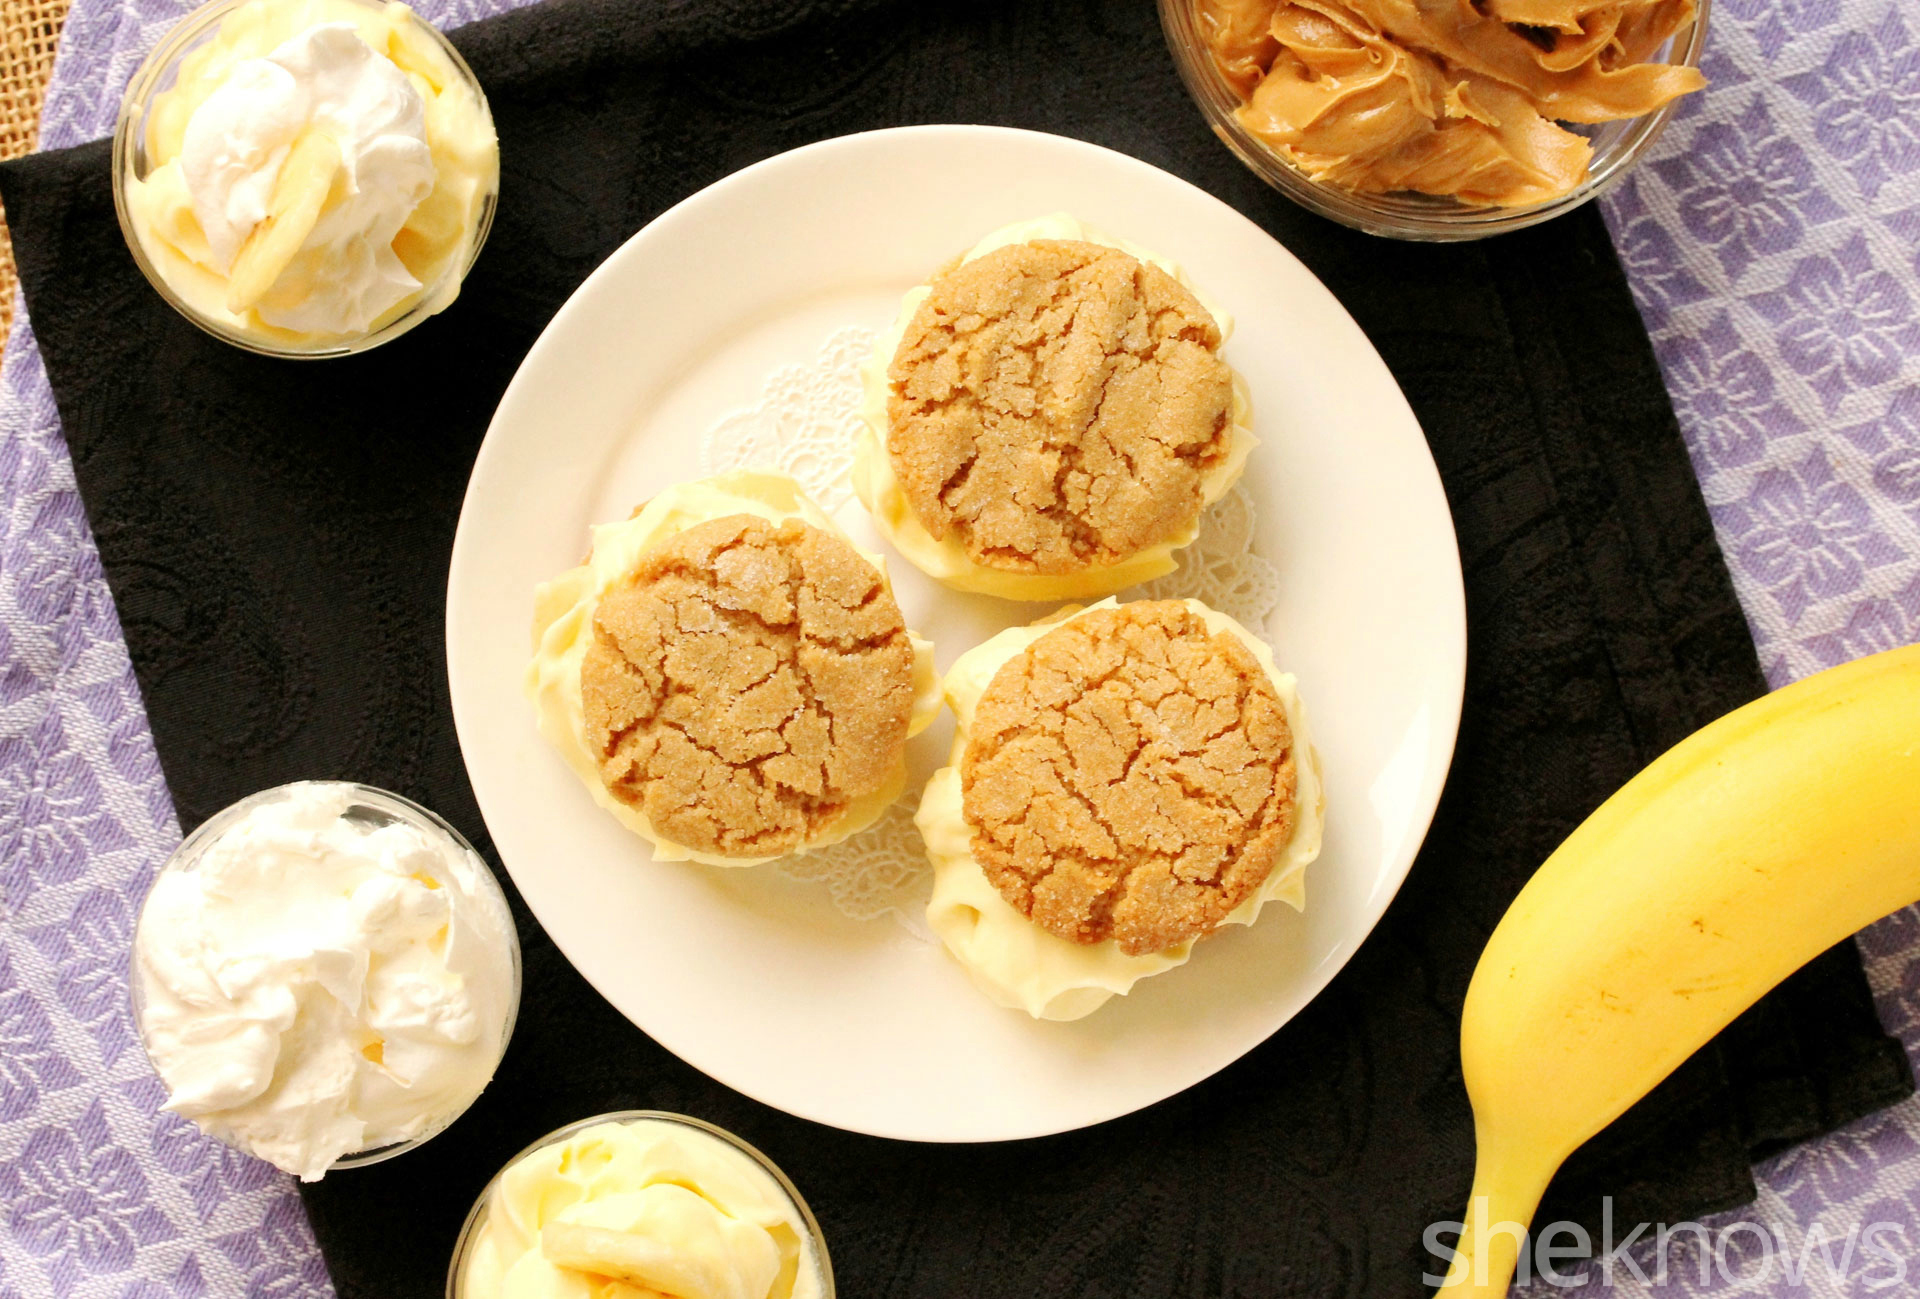 peanut-butter-and-banana-cookies